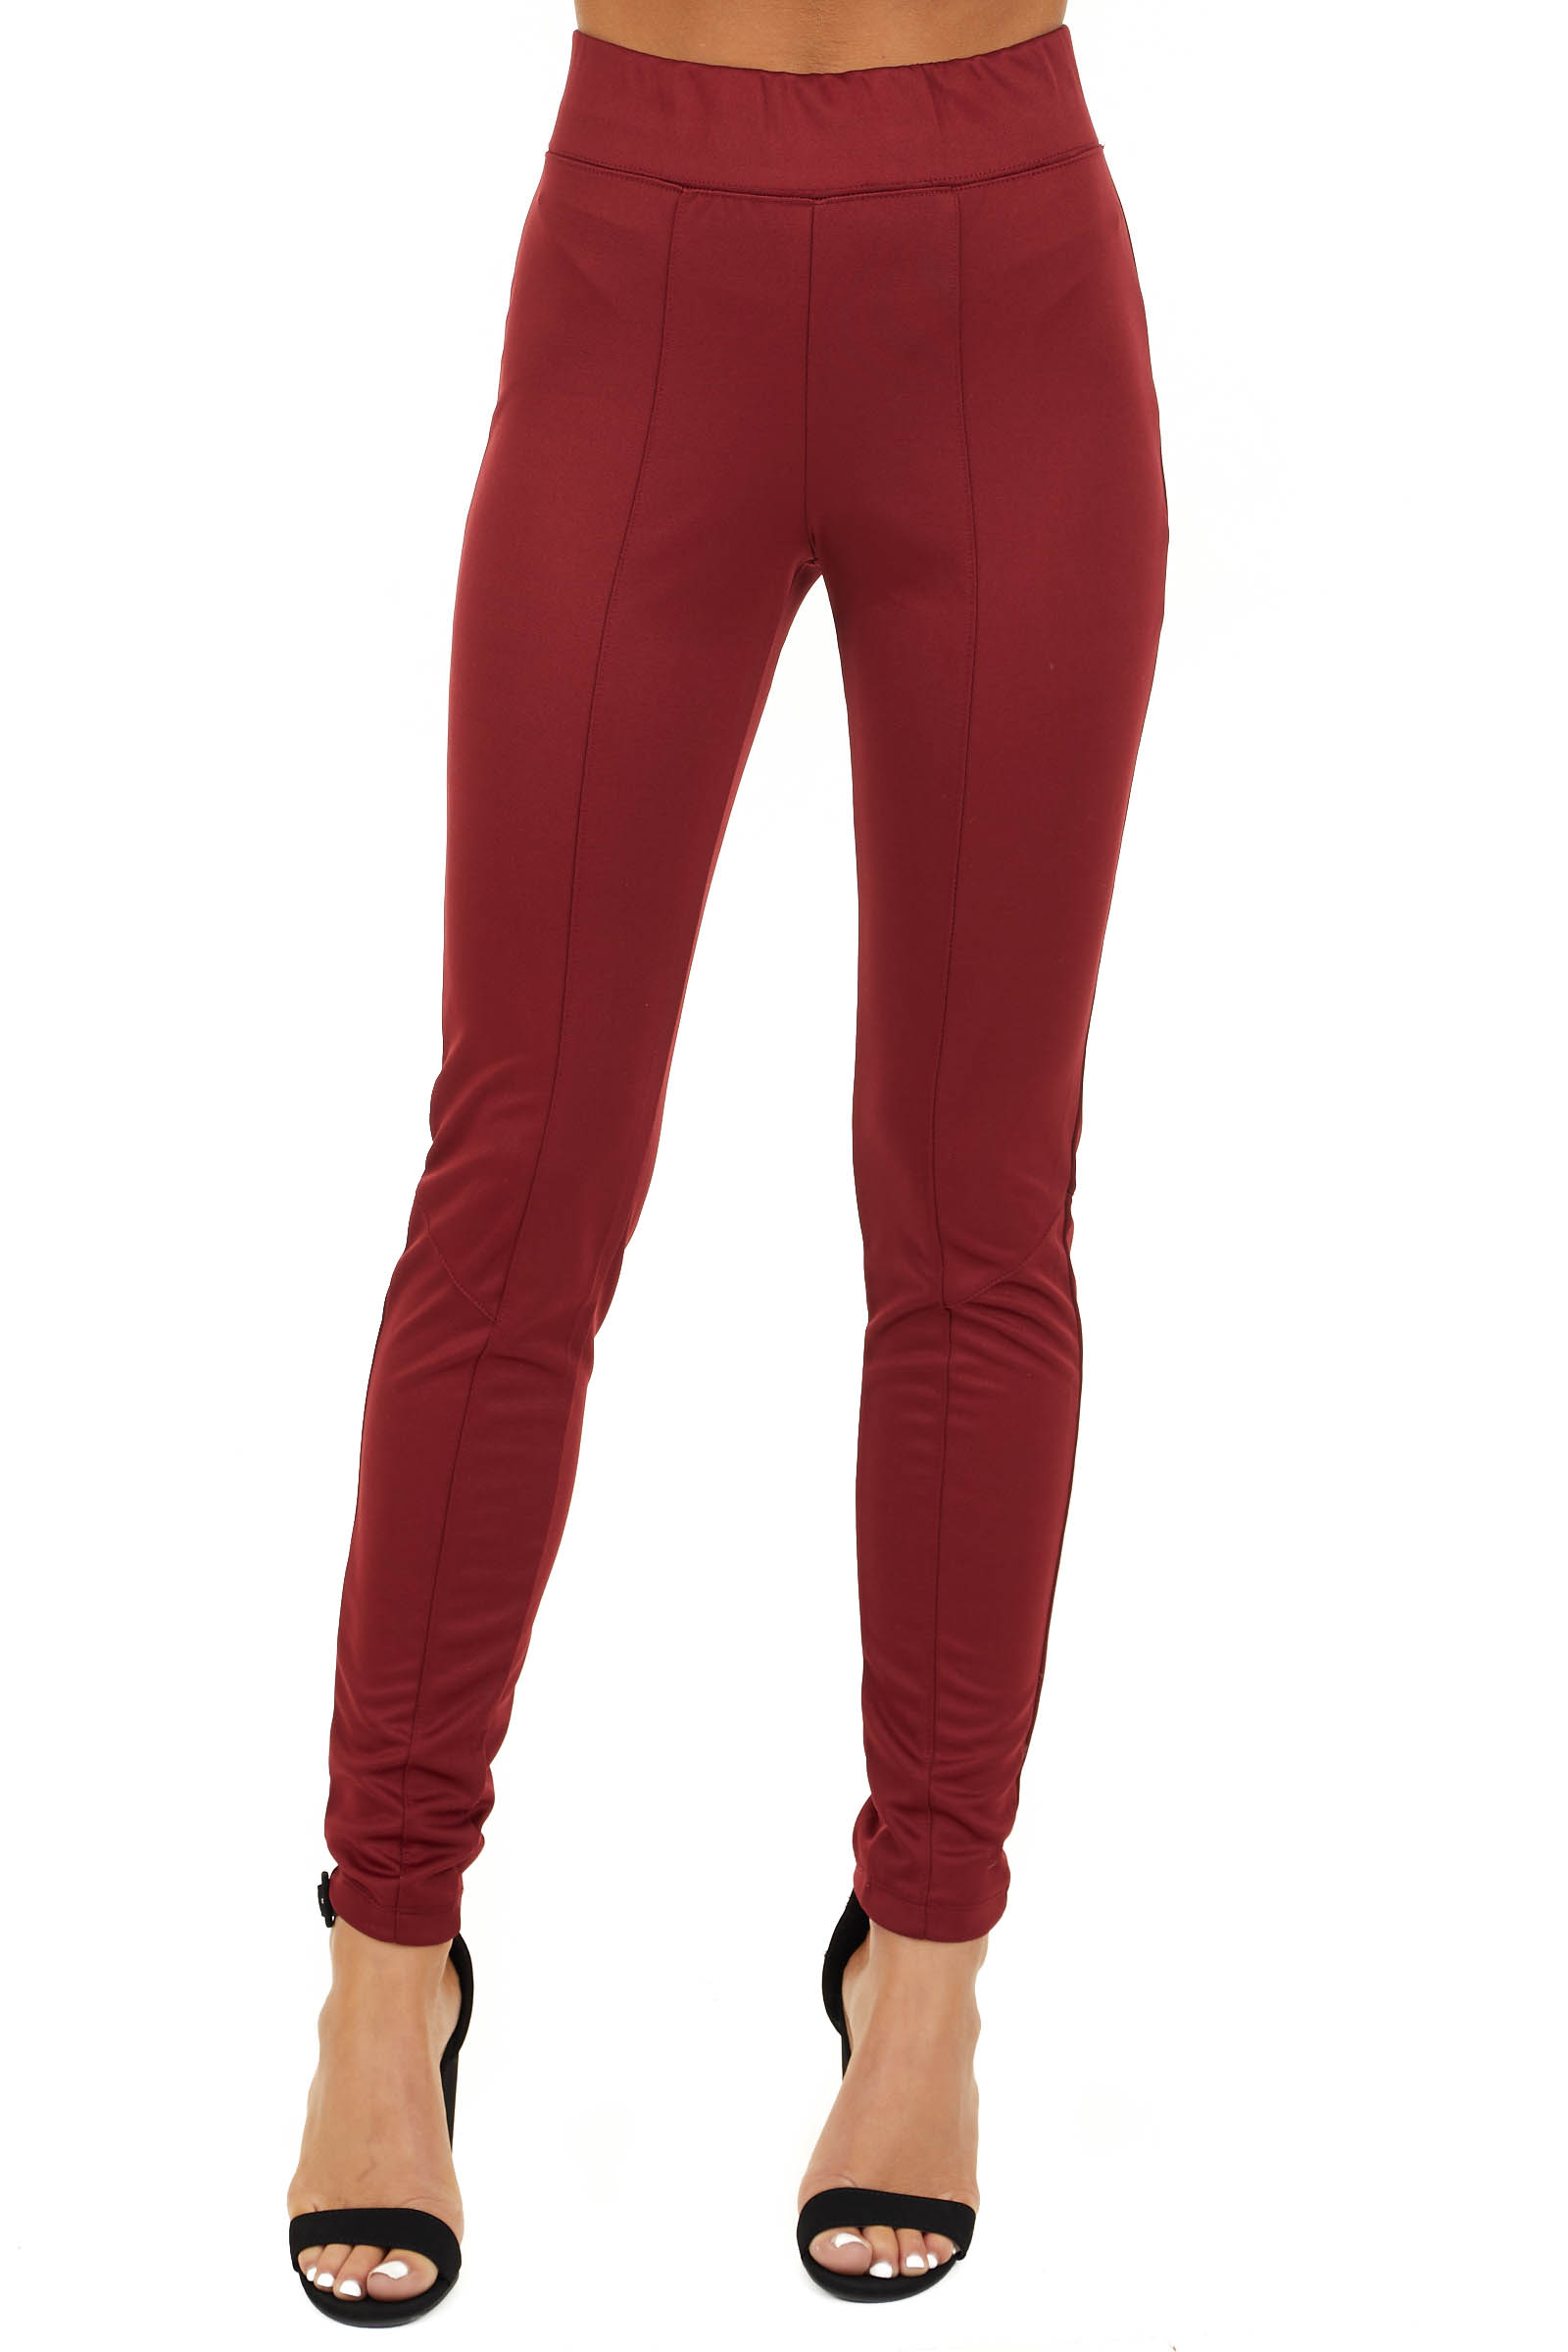 Burgundy High Waisted Leggings with Elastic Waistband front view